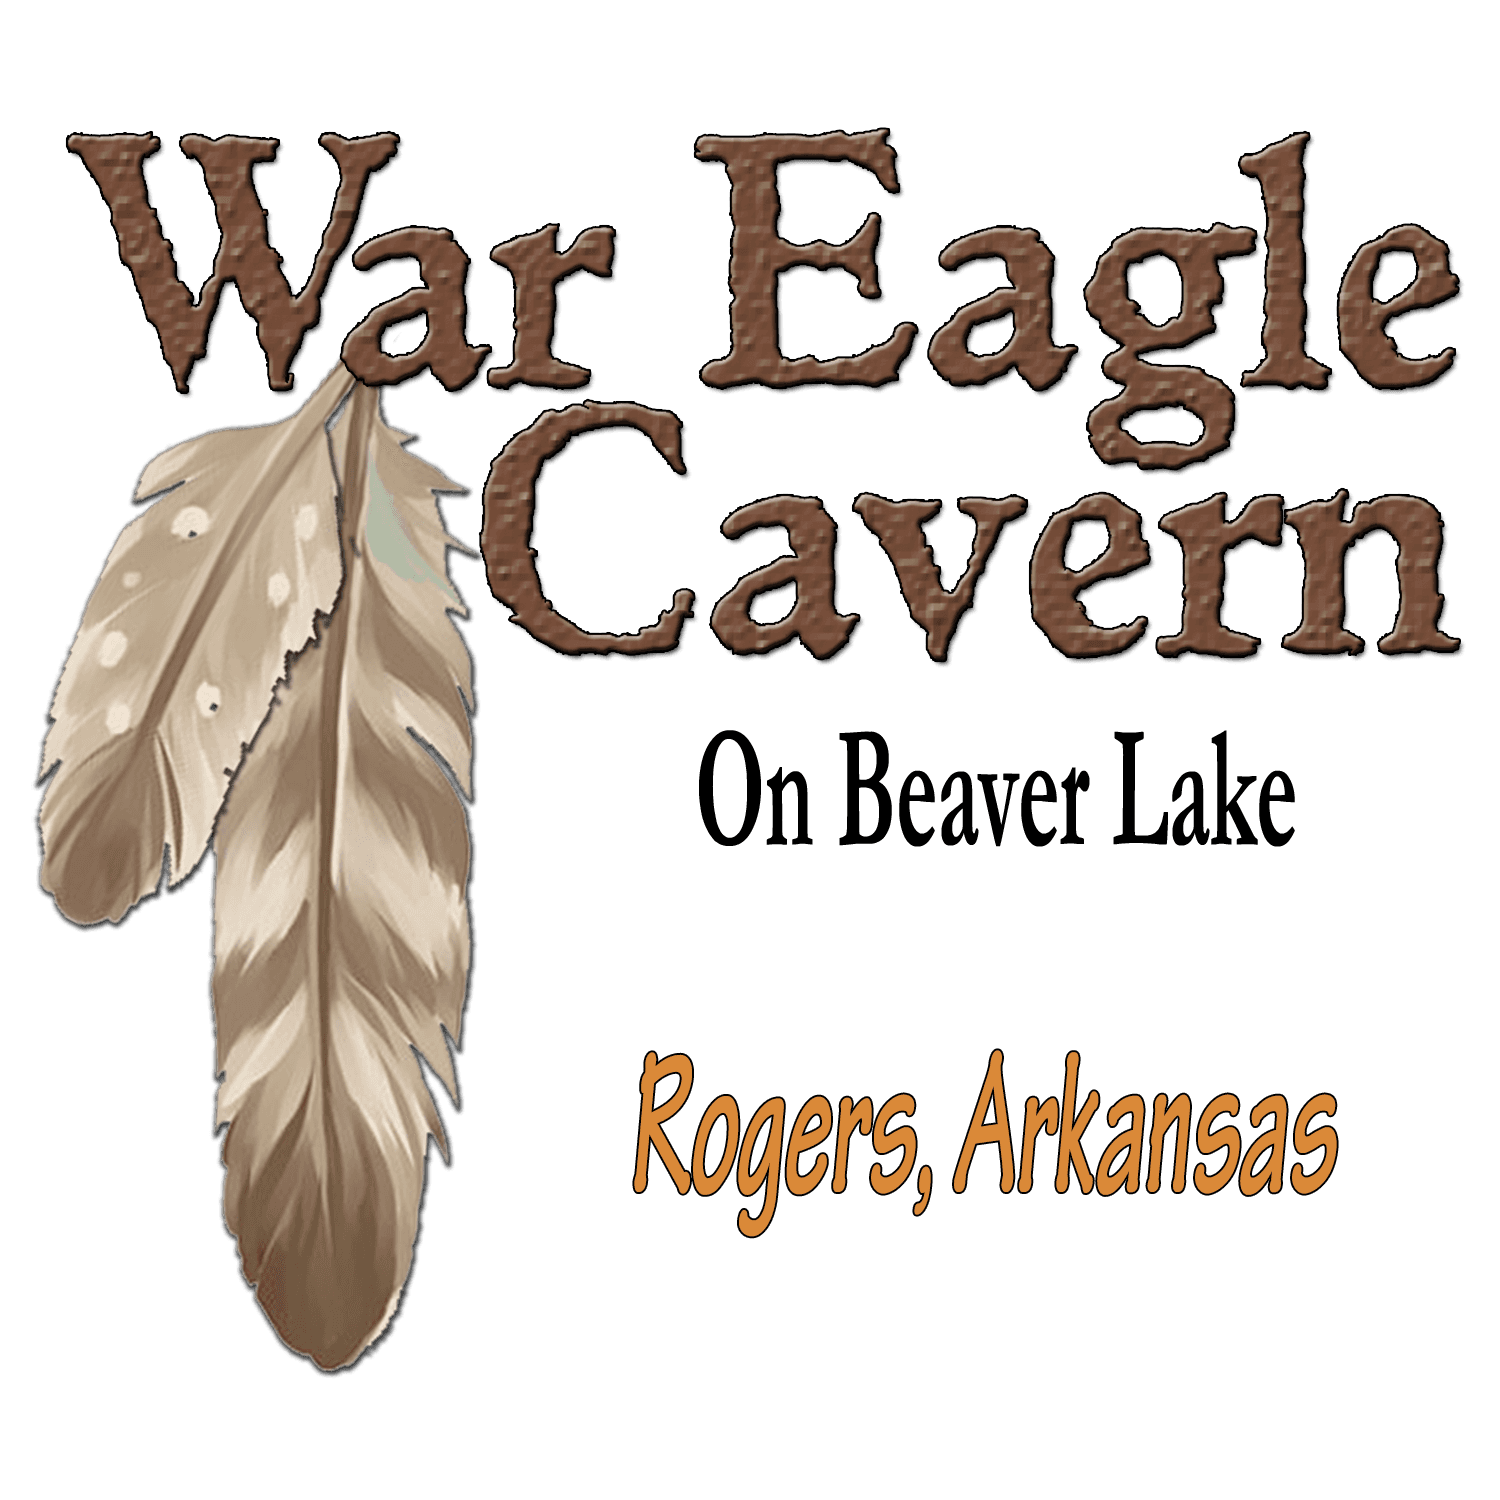 War Eagle Cavern on Beaver Lake - Rogers, Arkansas